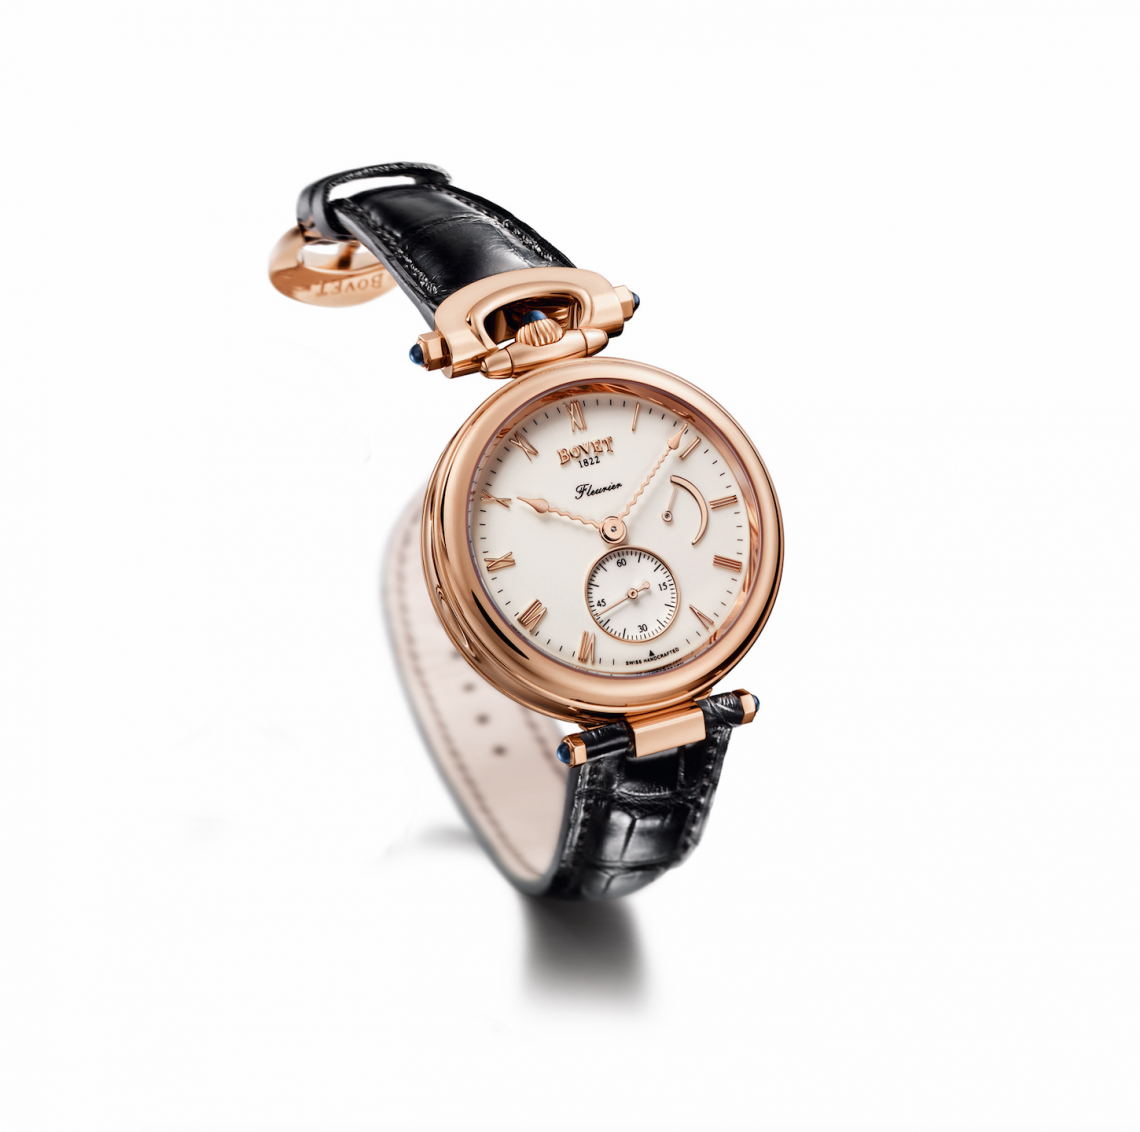 BOVET Amadeo Fleurier The Beauty and Style of BOVET Convertible Amadeo Timepieces EAT LOVE SAVOR International luxury lifestyle magazine and bookazines